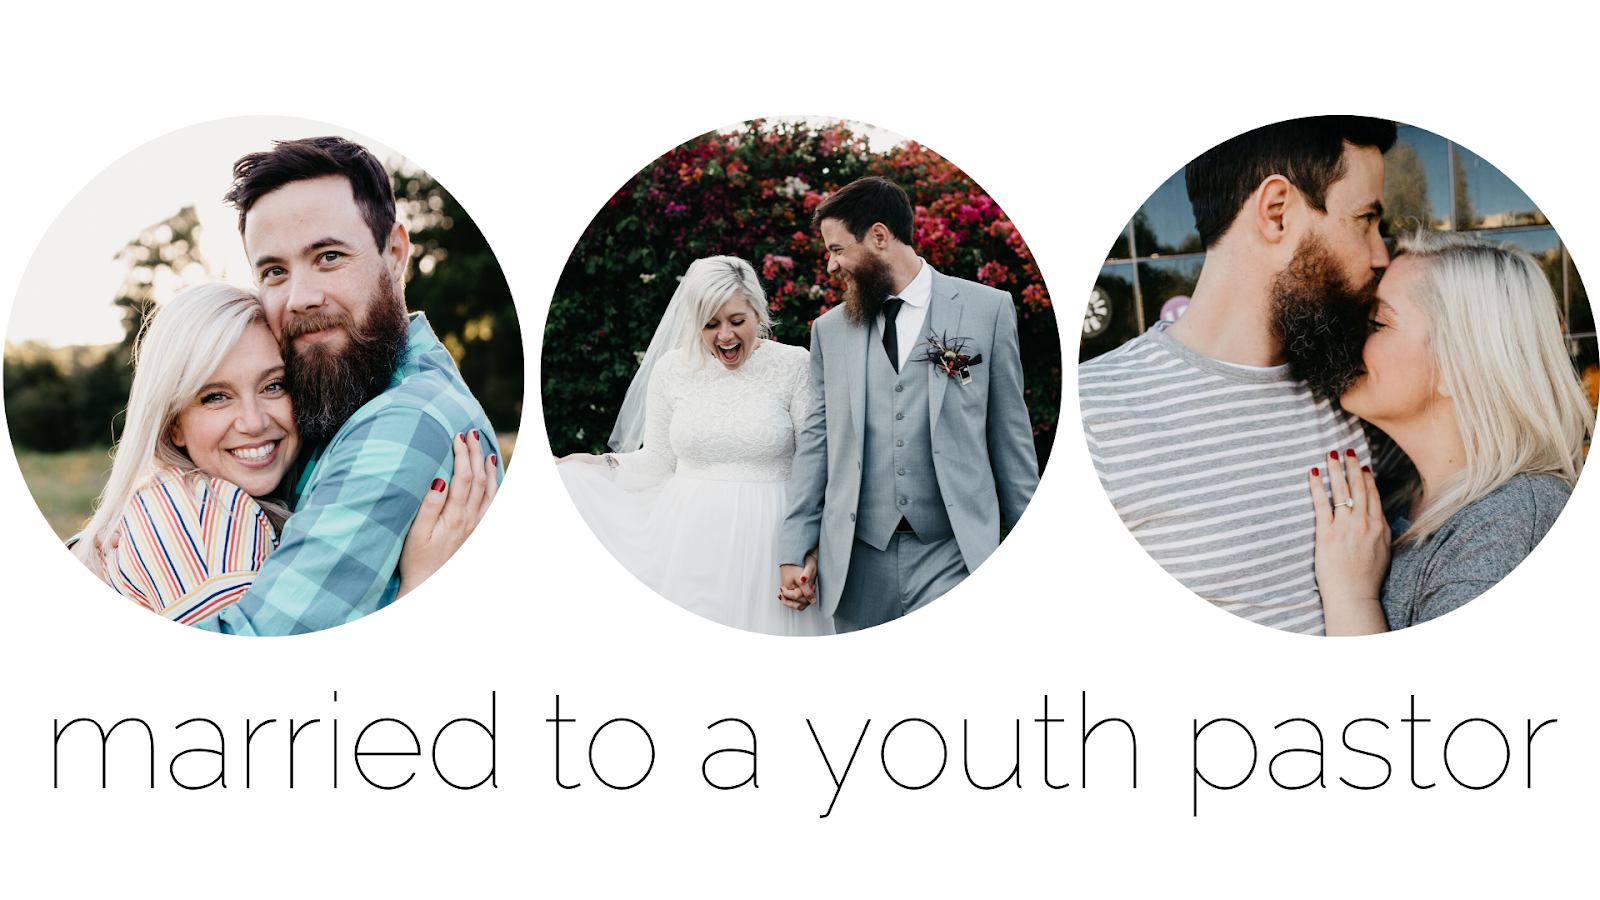 Married To A Youth Pastor